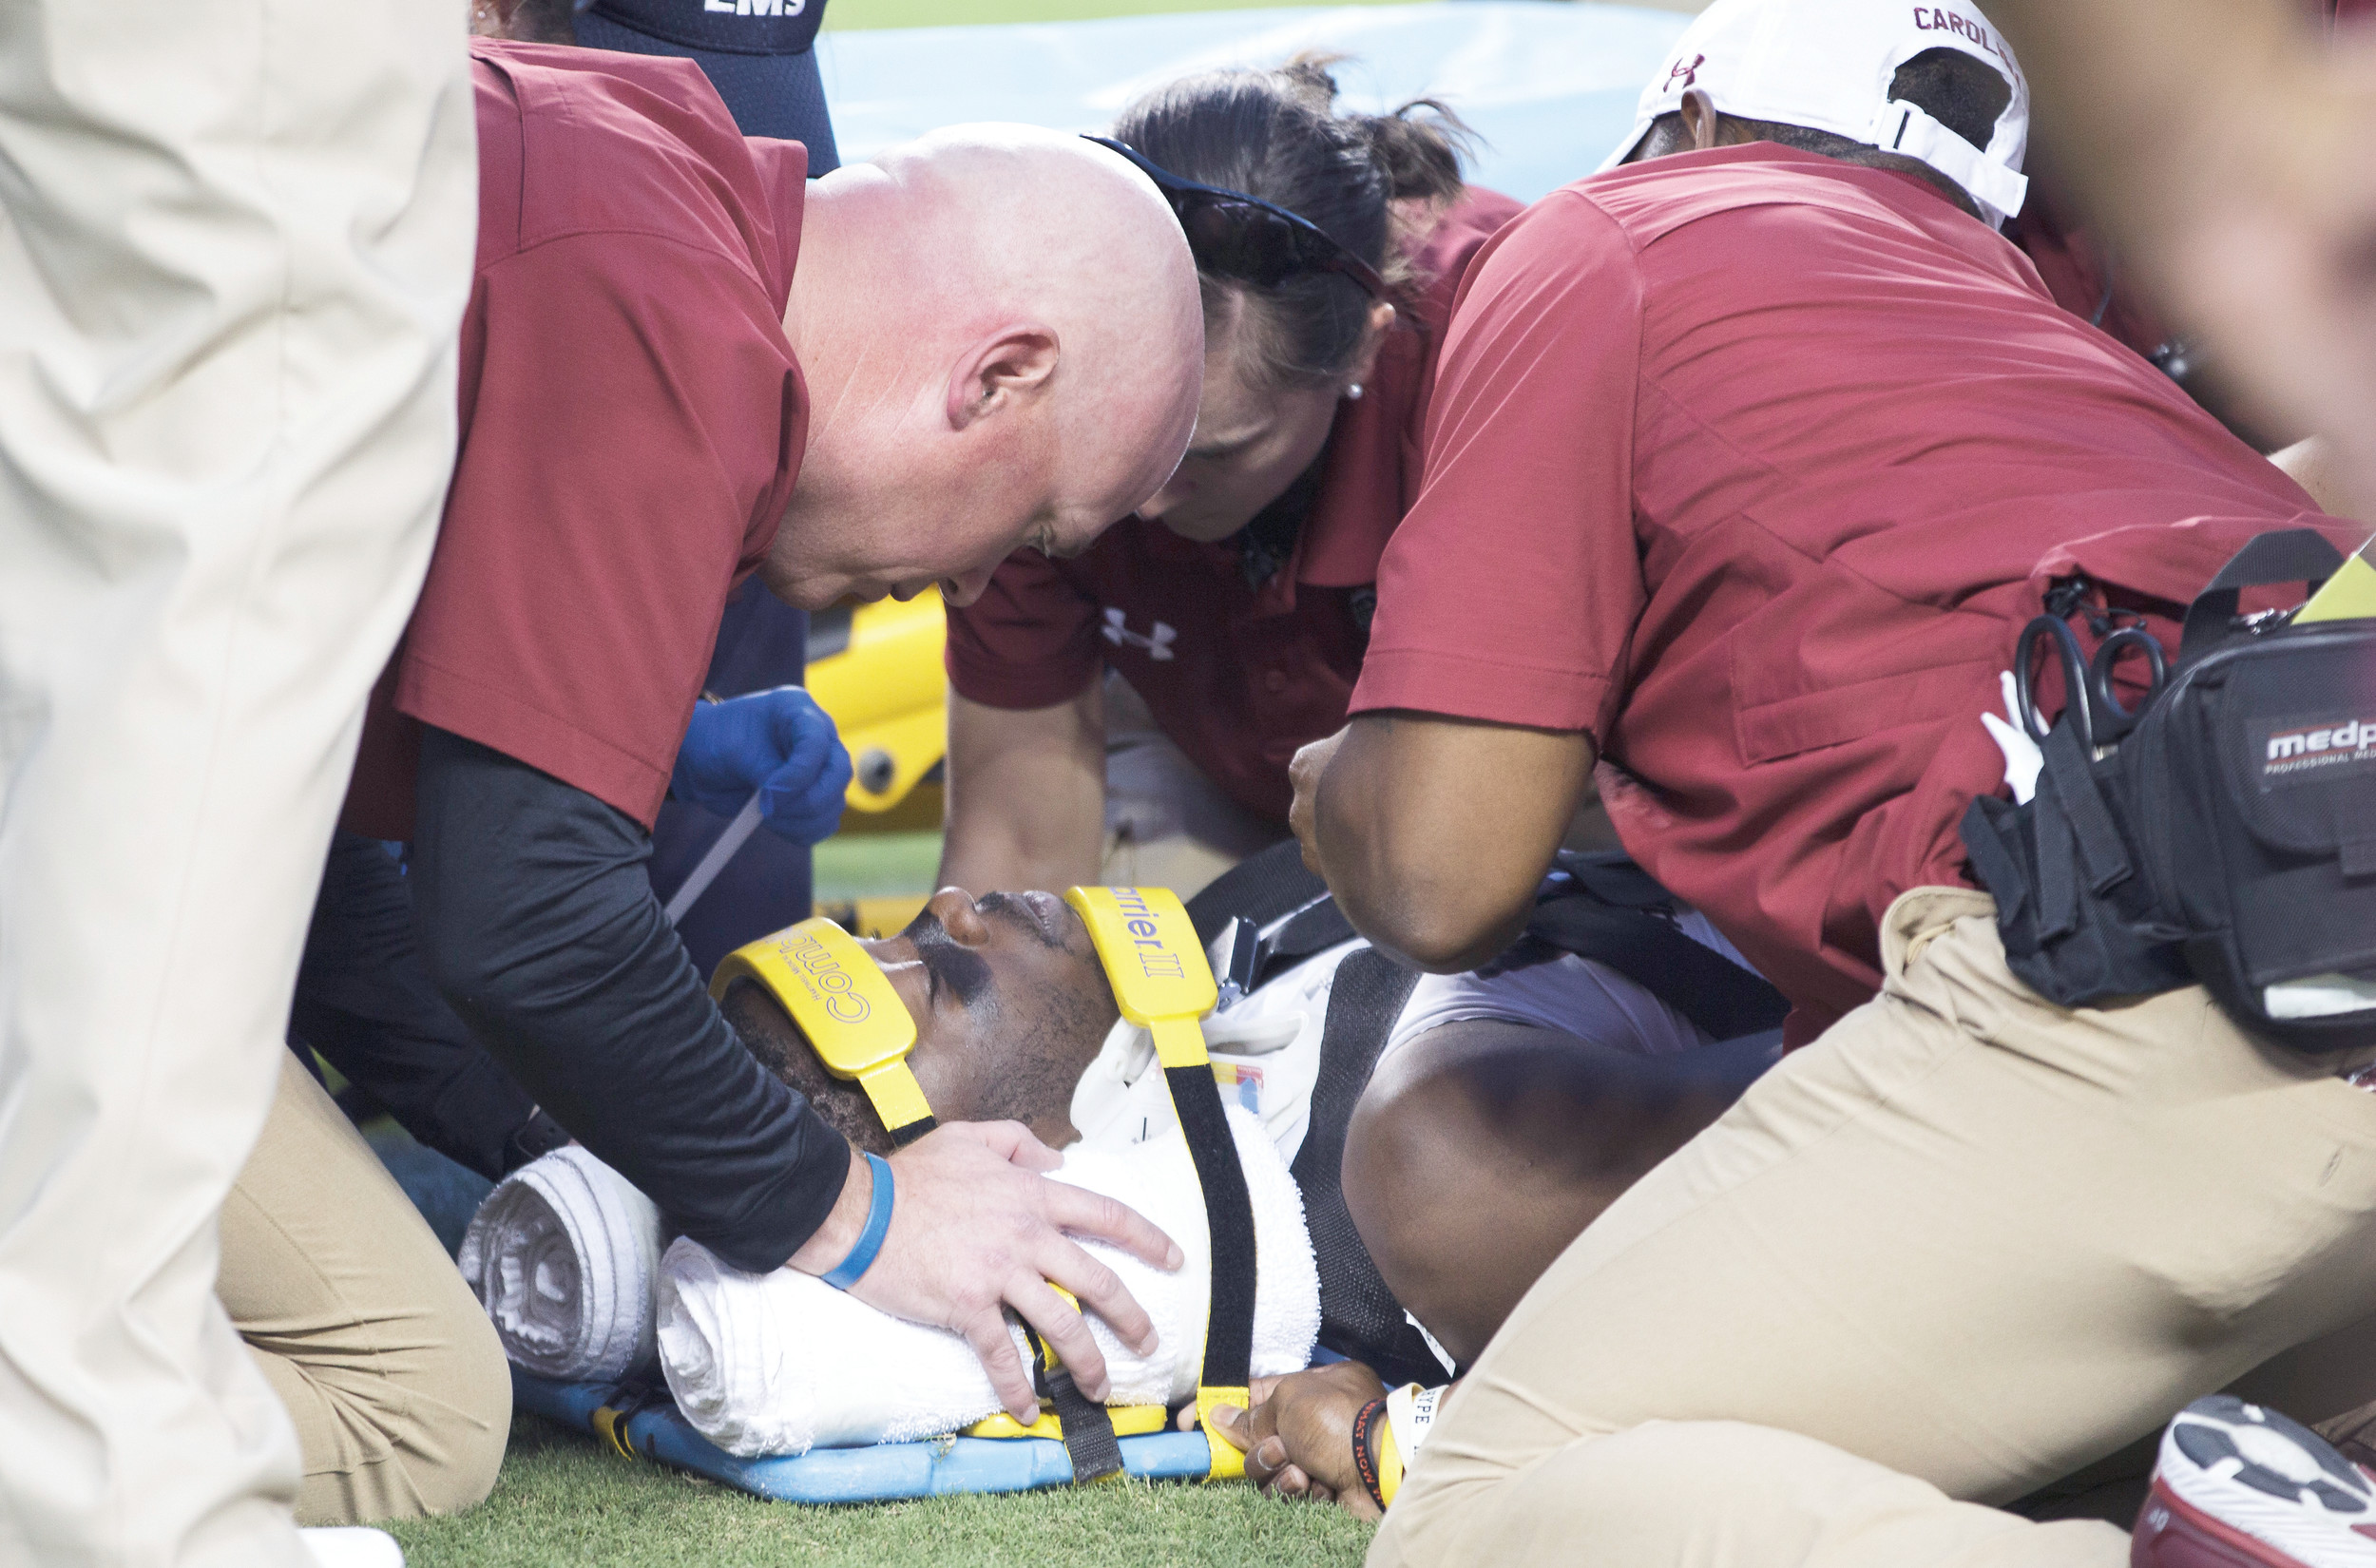 South Carolina wide receiver Terry Googer (6) is looked over by medical personal after being injured during the first quarter Saturday's game in College Station, Texas. Googer did have feeling in all of his extremities and was released from the hospital.